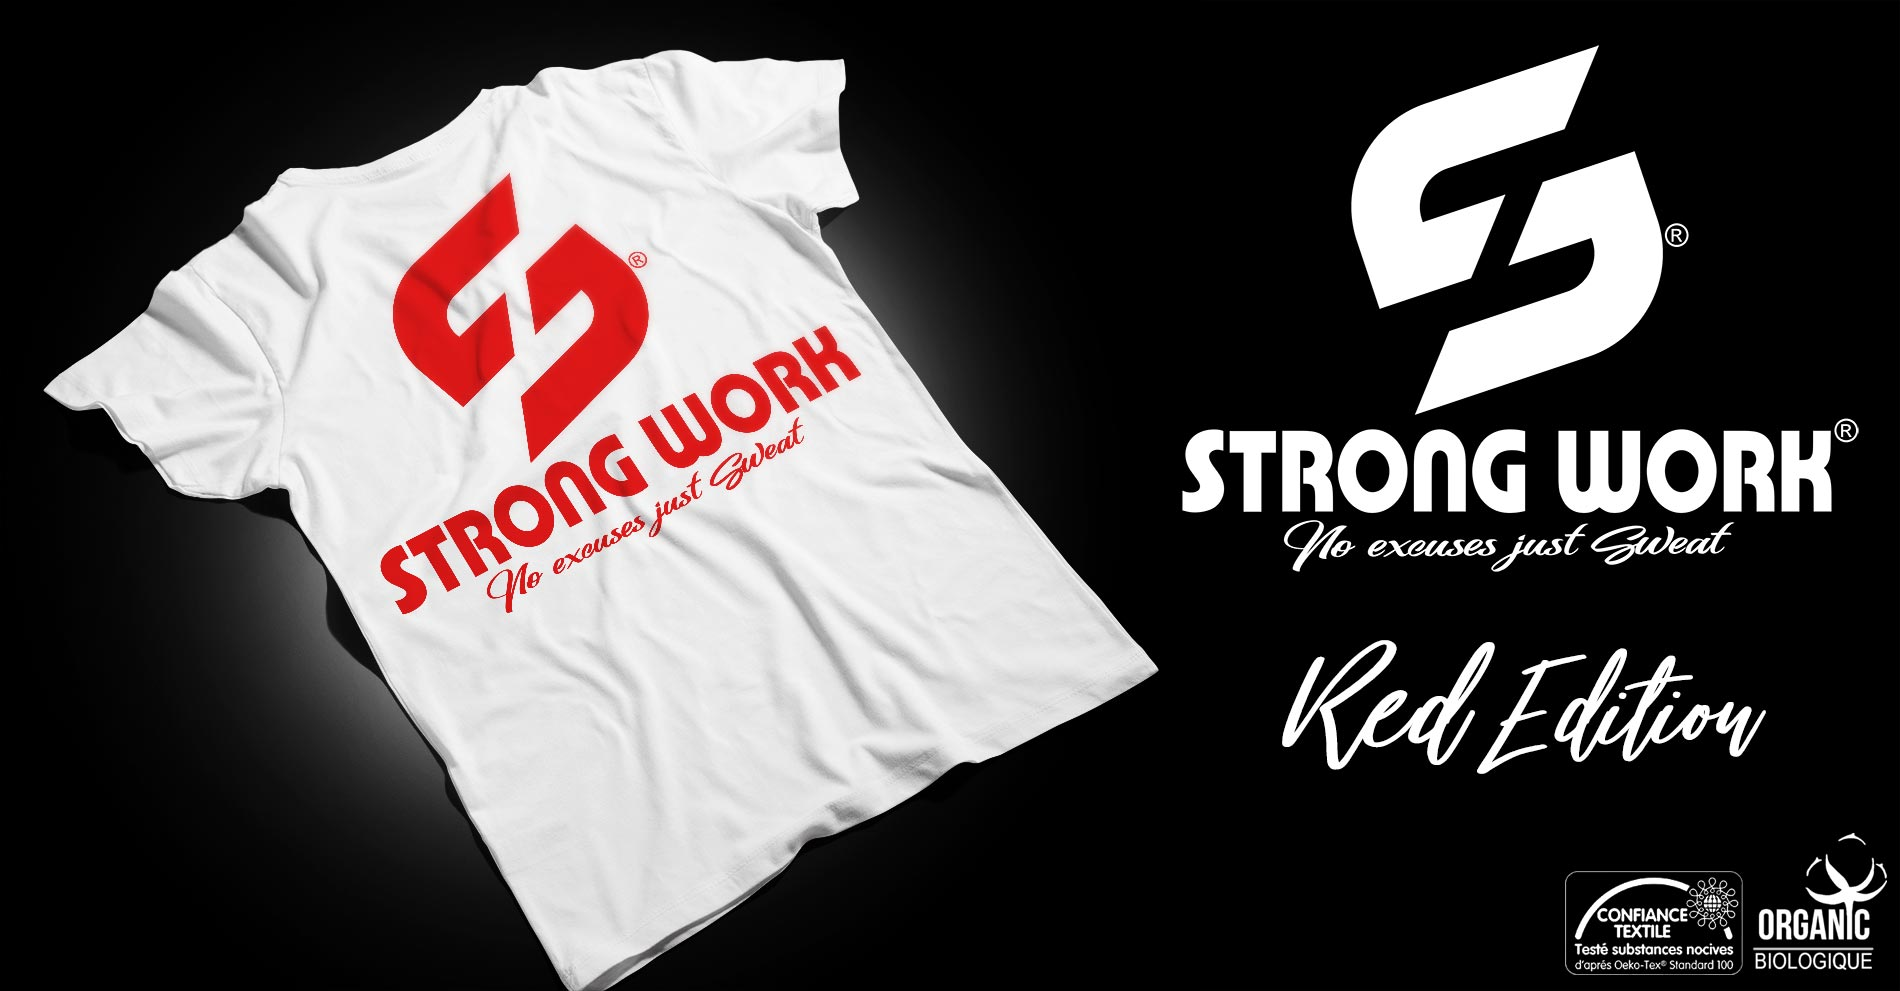 STRONG WORK ORIGINALS RED EDITION POUR FEMME - SPORTSWEAR